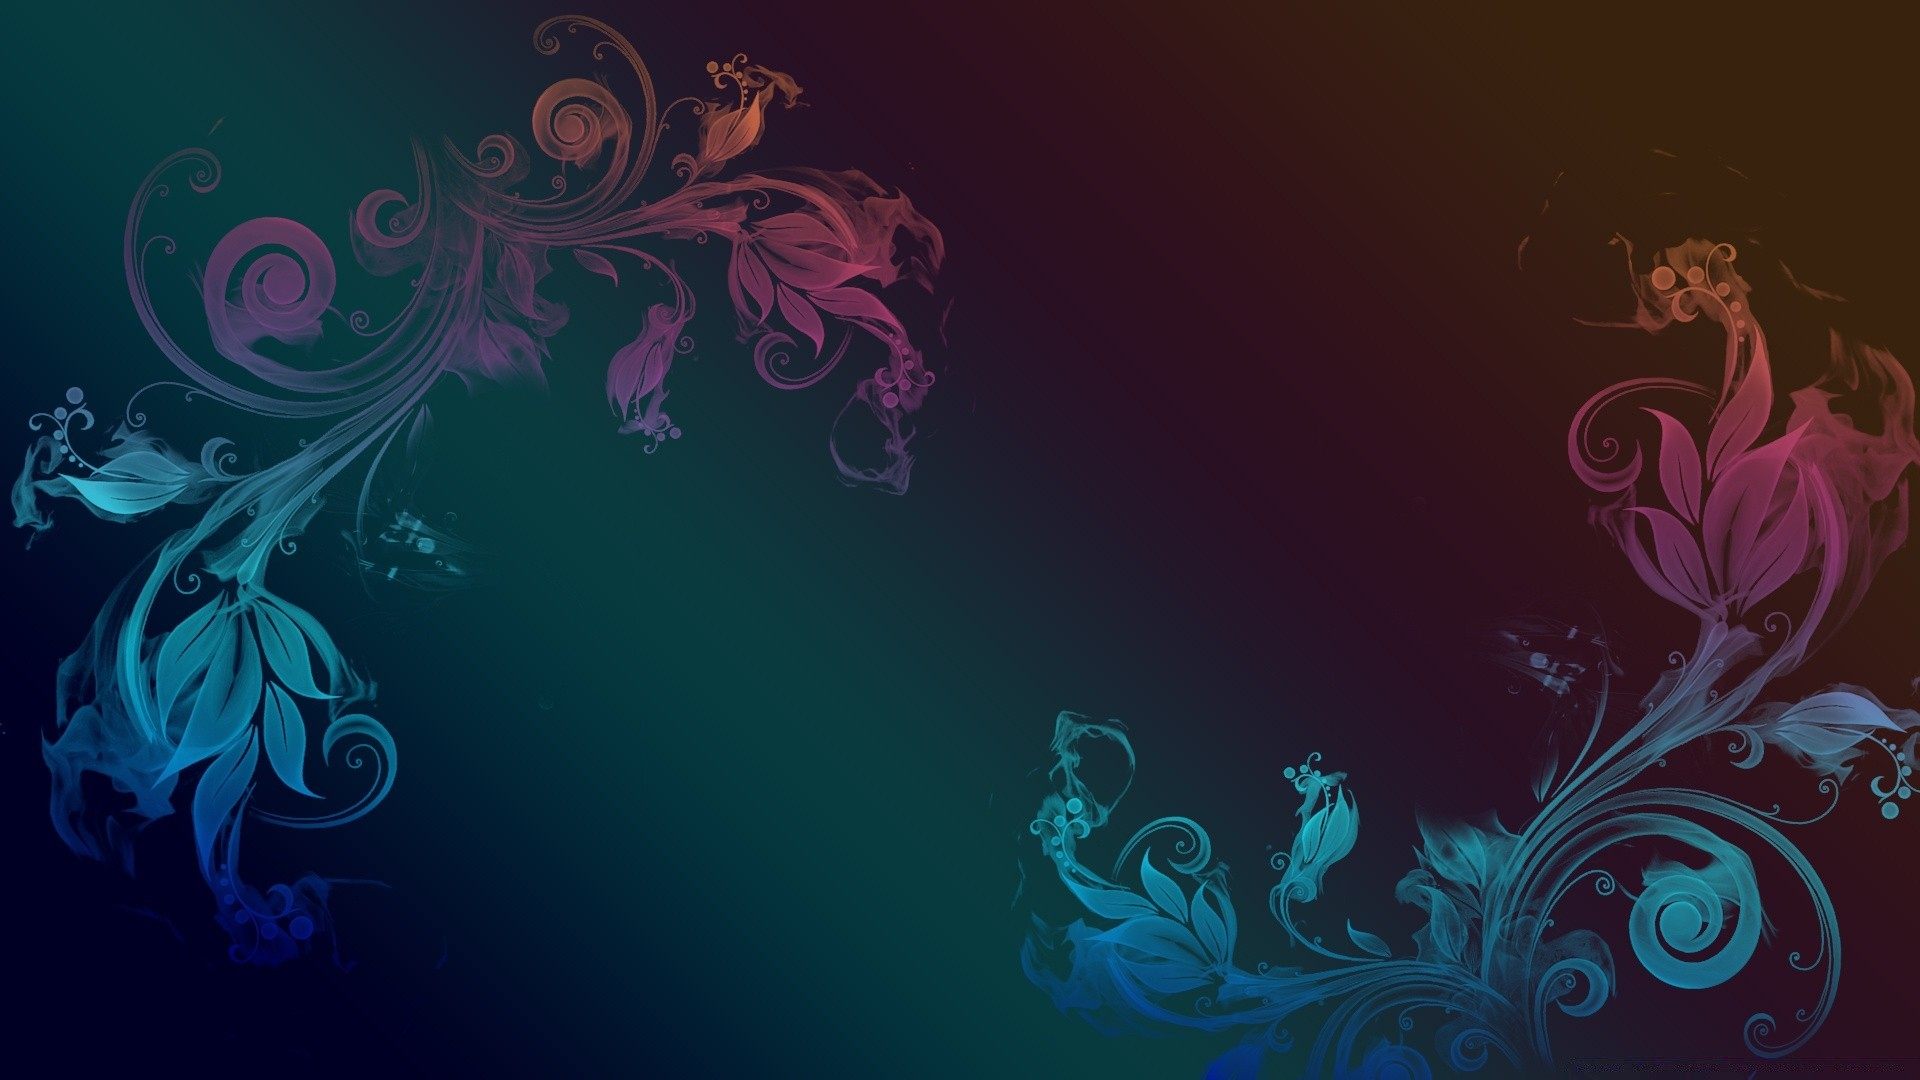 Gradient Background Desktop Wallpapers For Free